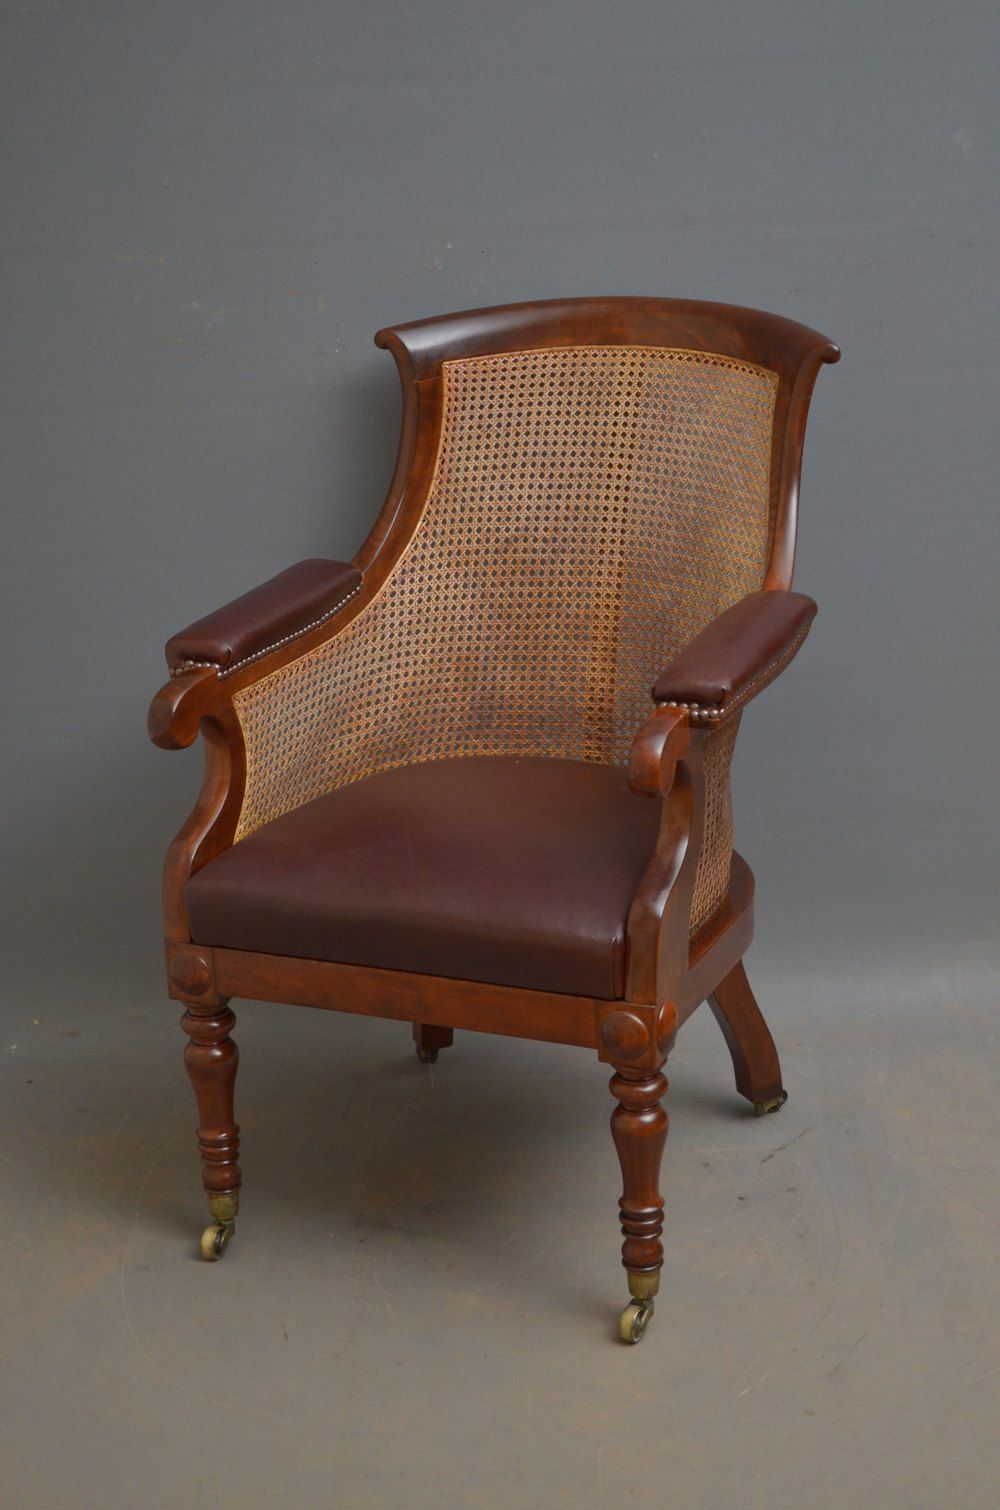 Early Victorian Mahogany Library Chair - Antiques Atlas - Early Victorian Mahogany Library Chair Antique Library Chairs